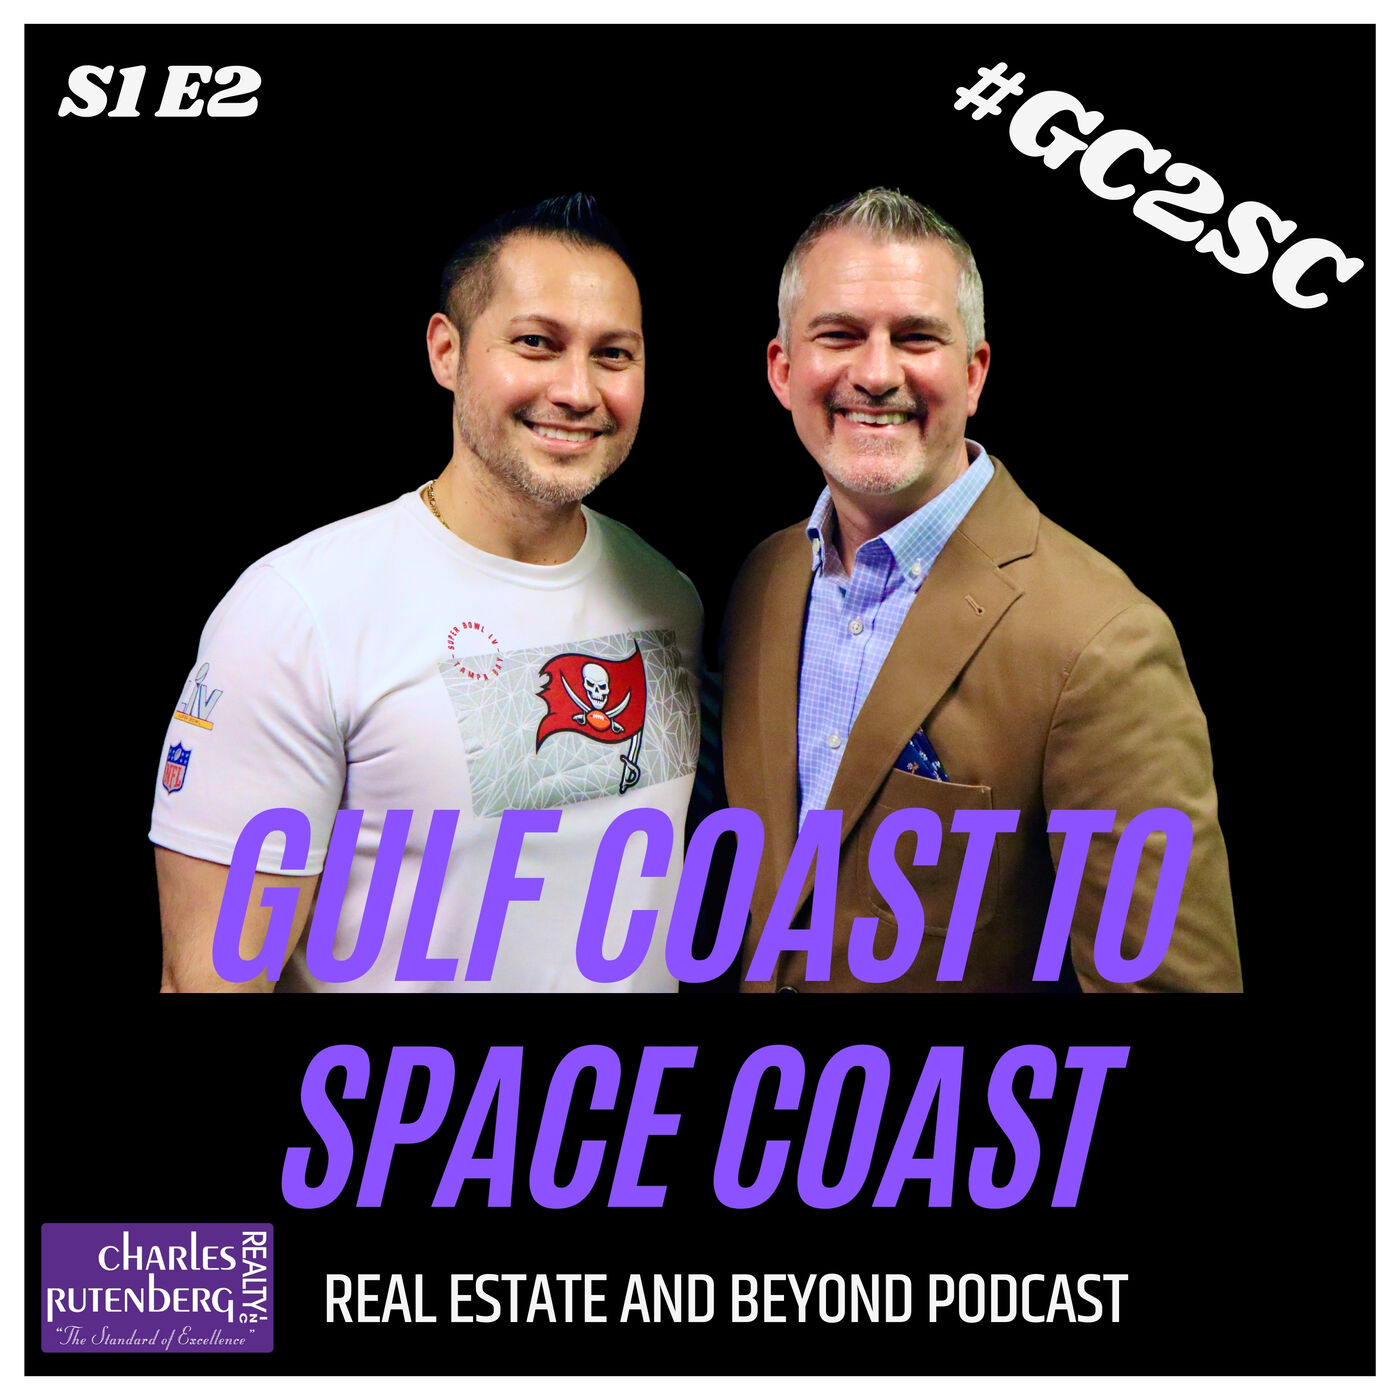 Gulf Coast 2 Space Coast - David and Fred talk Real Estate during the Pandemic